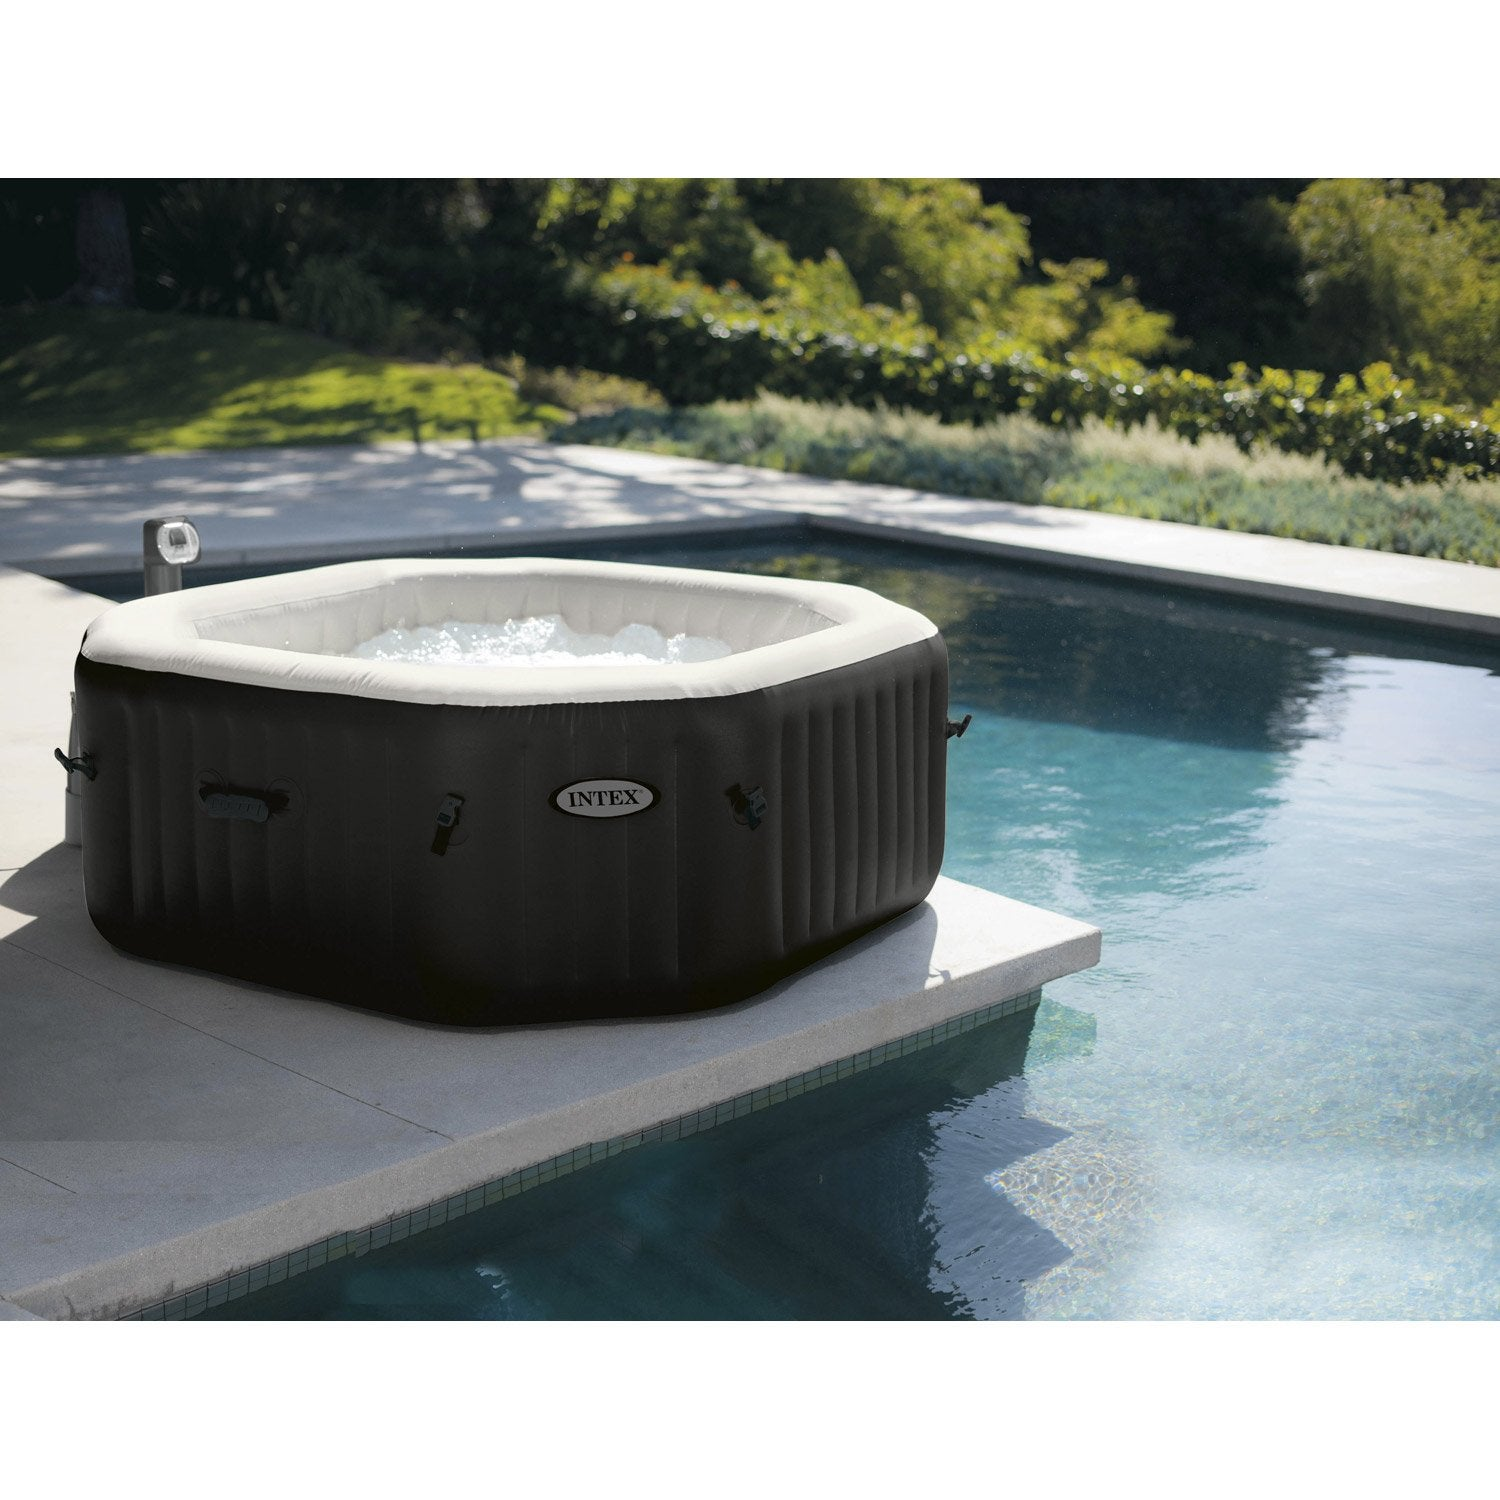 Leroy Merlin Spa Intex spa gonflable intex pure spa octogonale, 6 places assises